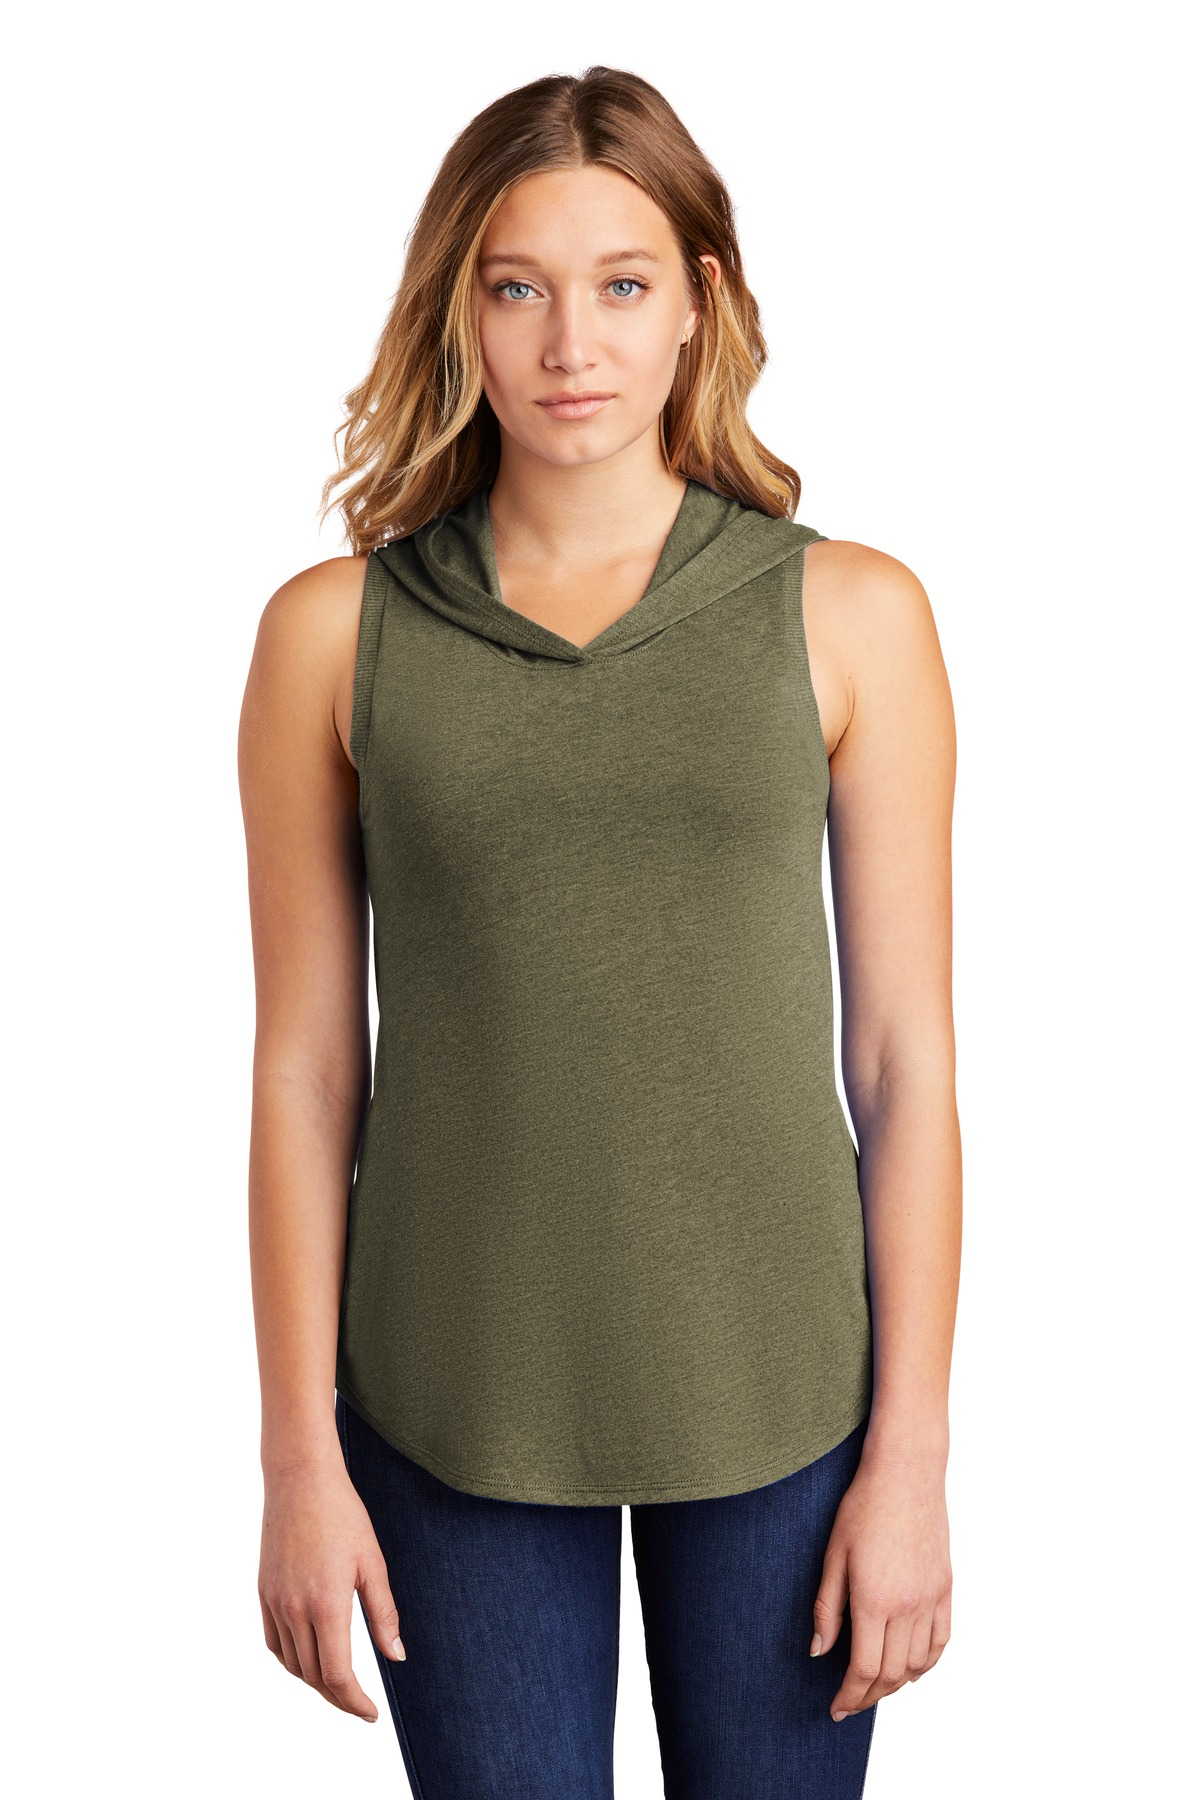 District  ®  Women's Perfect Tri  ®  Sleeveless Hoodie DT1375 - Military Green Frost